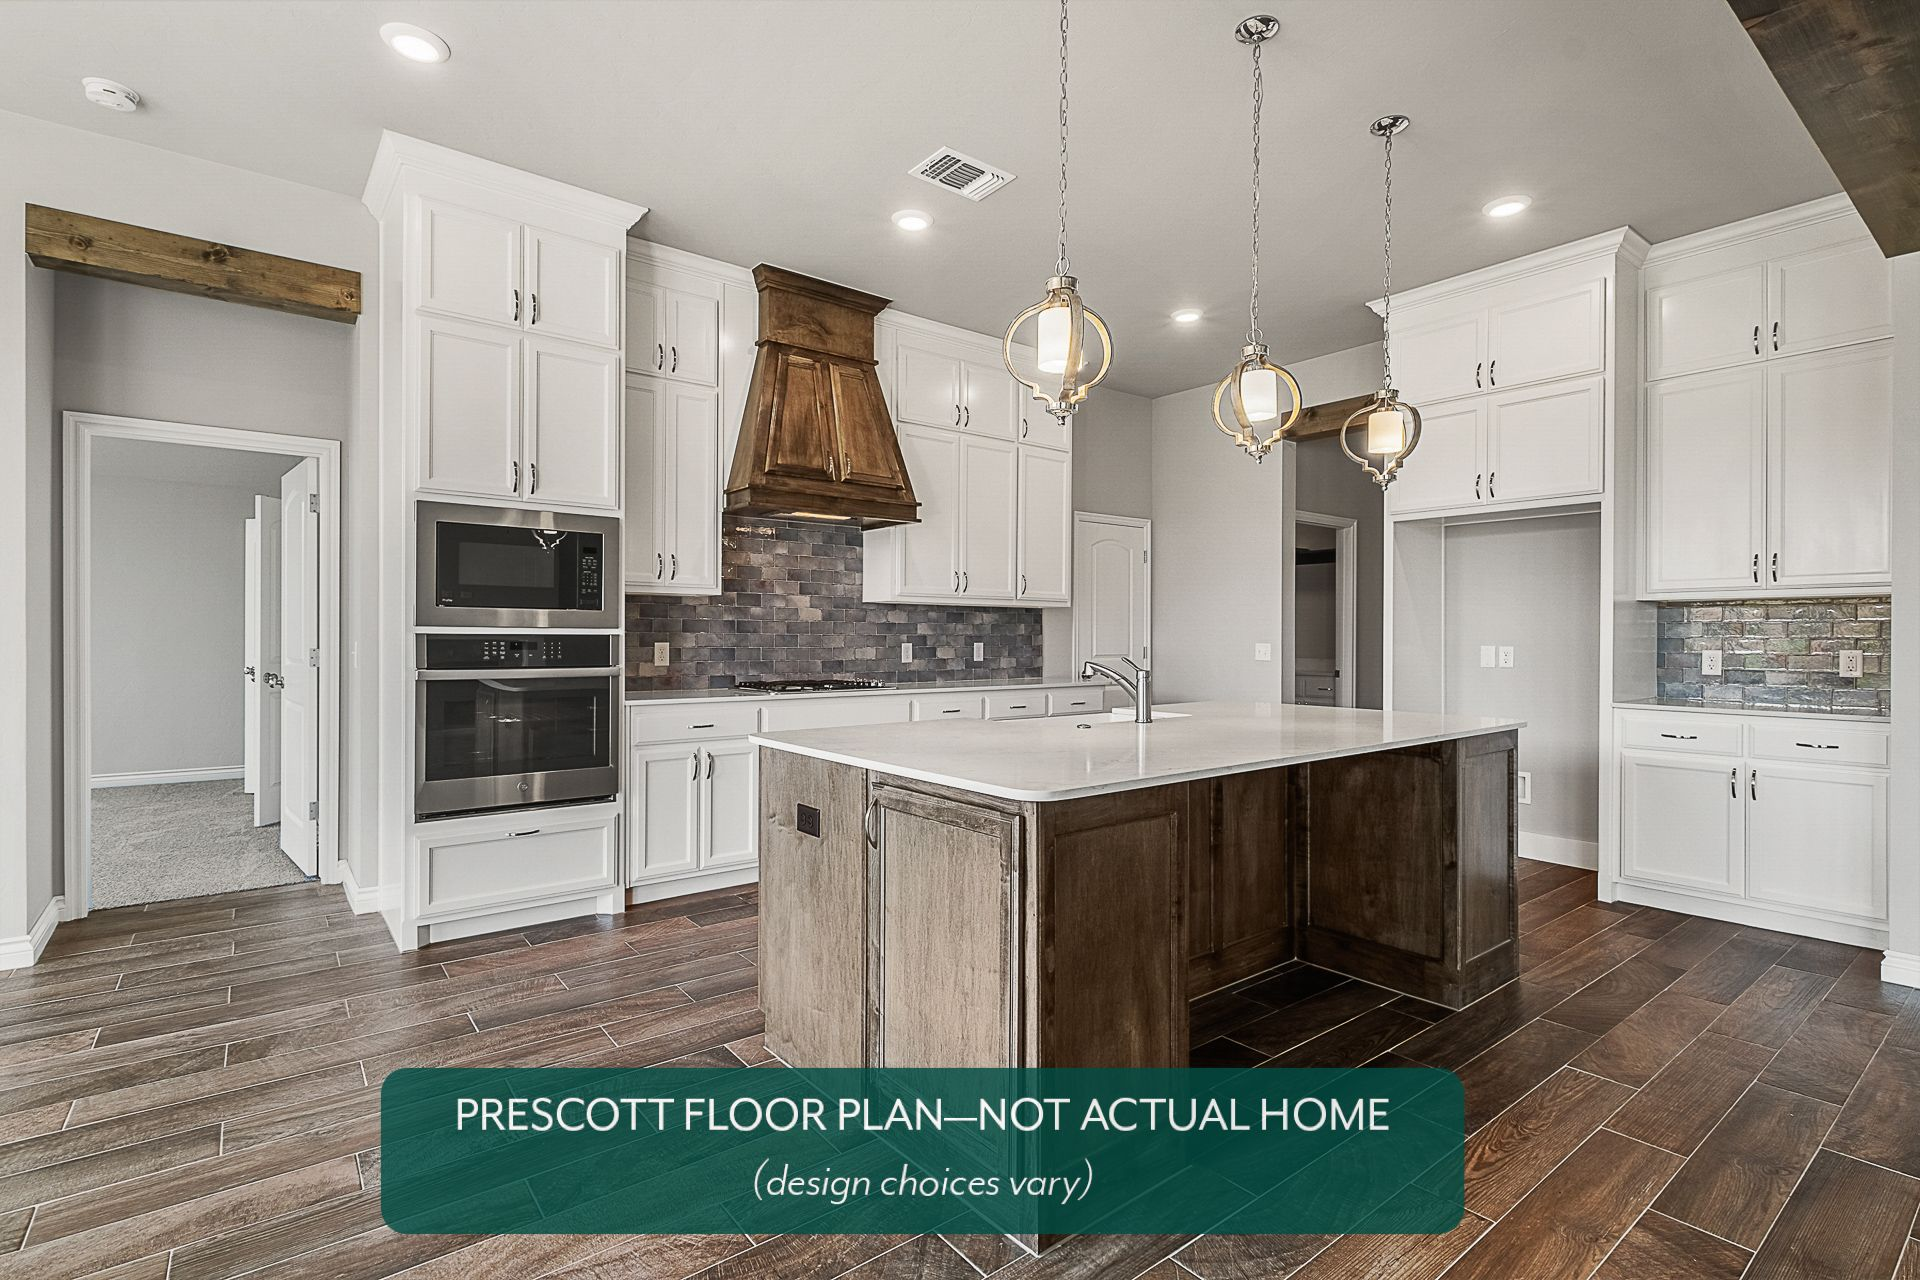 Kitchen featured in the Prescott By Ideal Homes in Oklahoma City, OK